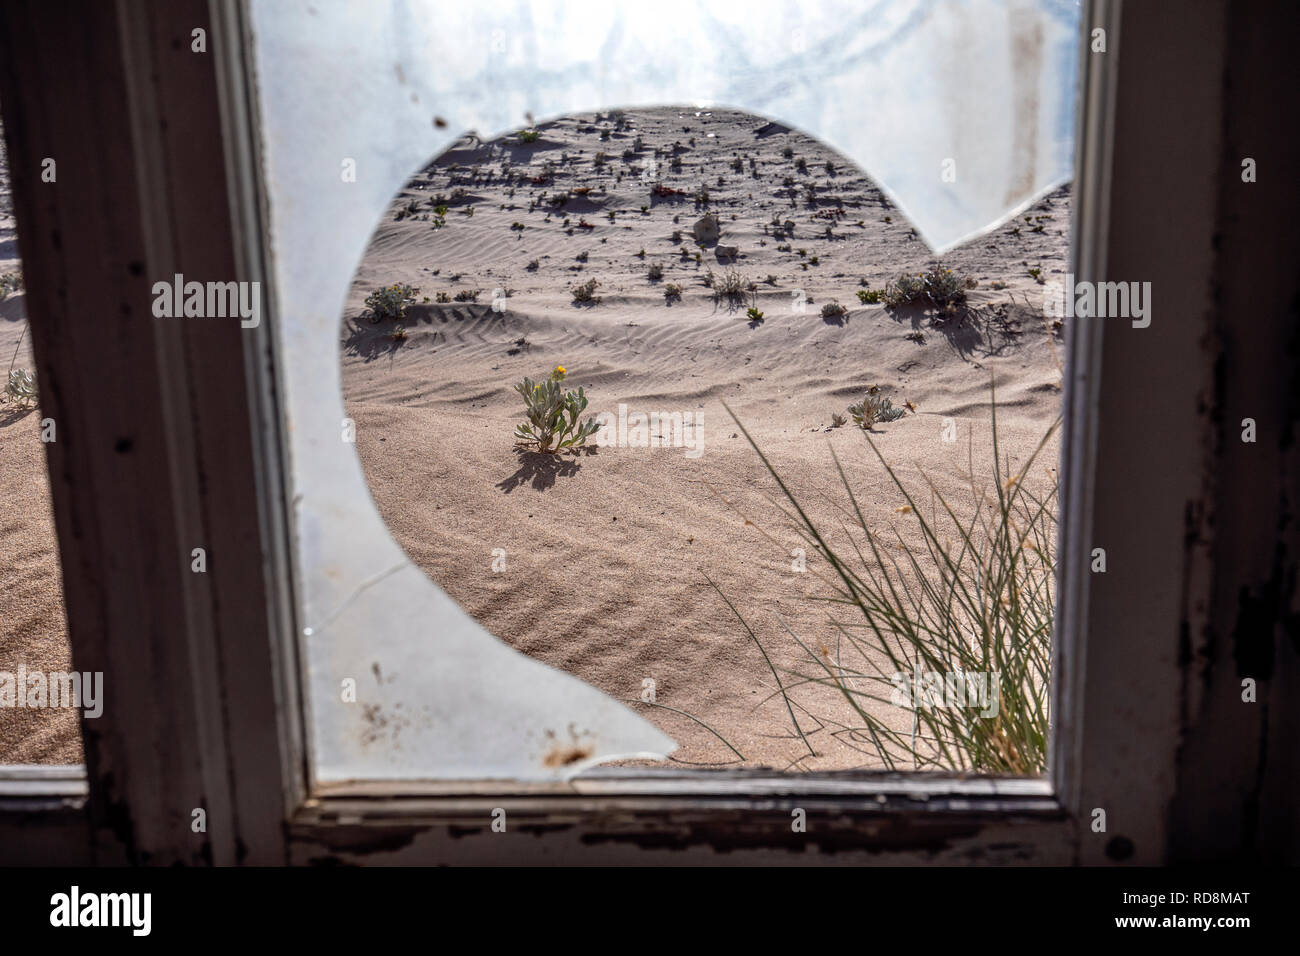 View through broken glass window in Kolmanskop Ghost Town - Luderitz, Namibia, Africa - Stock Image